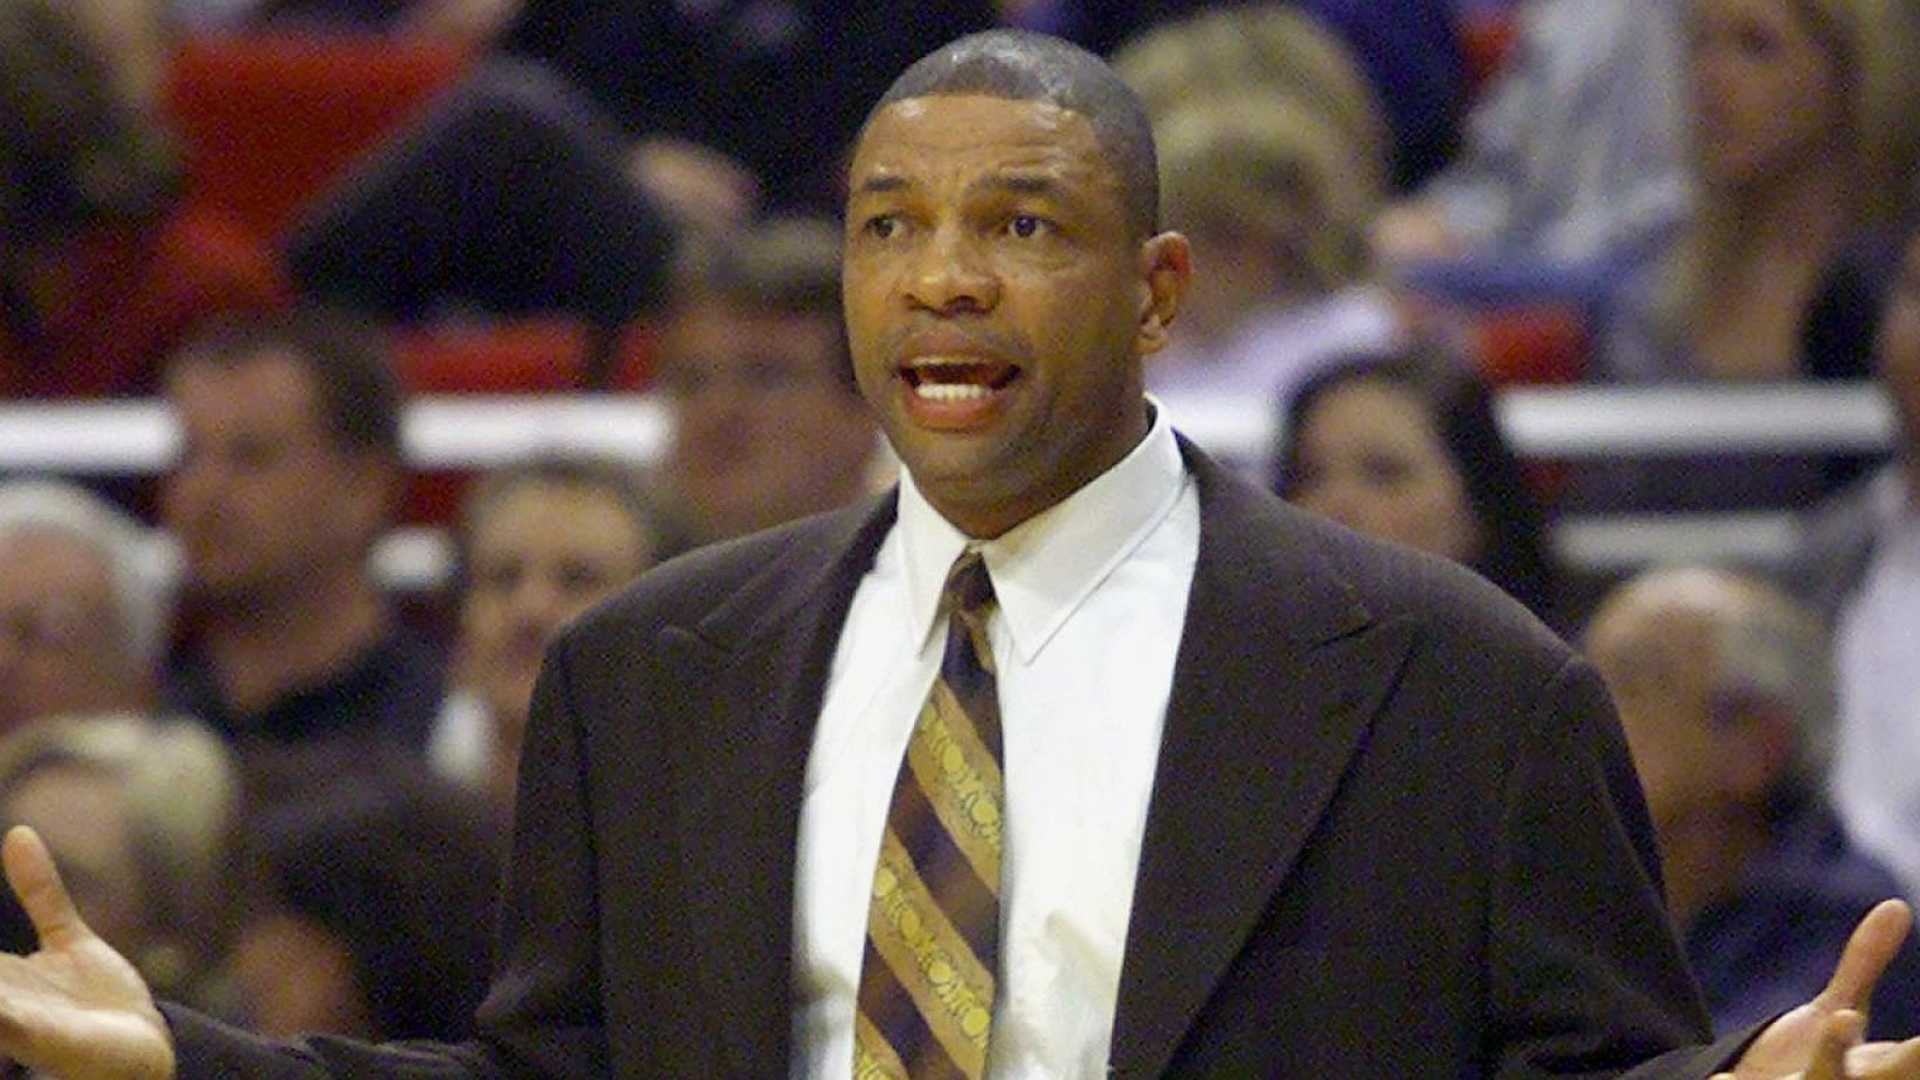 NBA Coach Doc Rivers Just Role-Modeled What a 'Class Act' Looks Like. Spike Lee Did Not